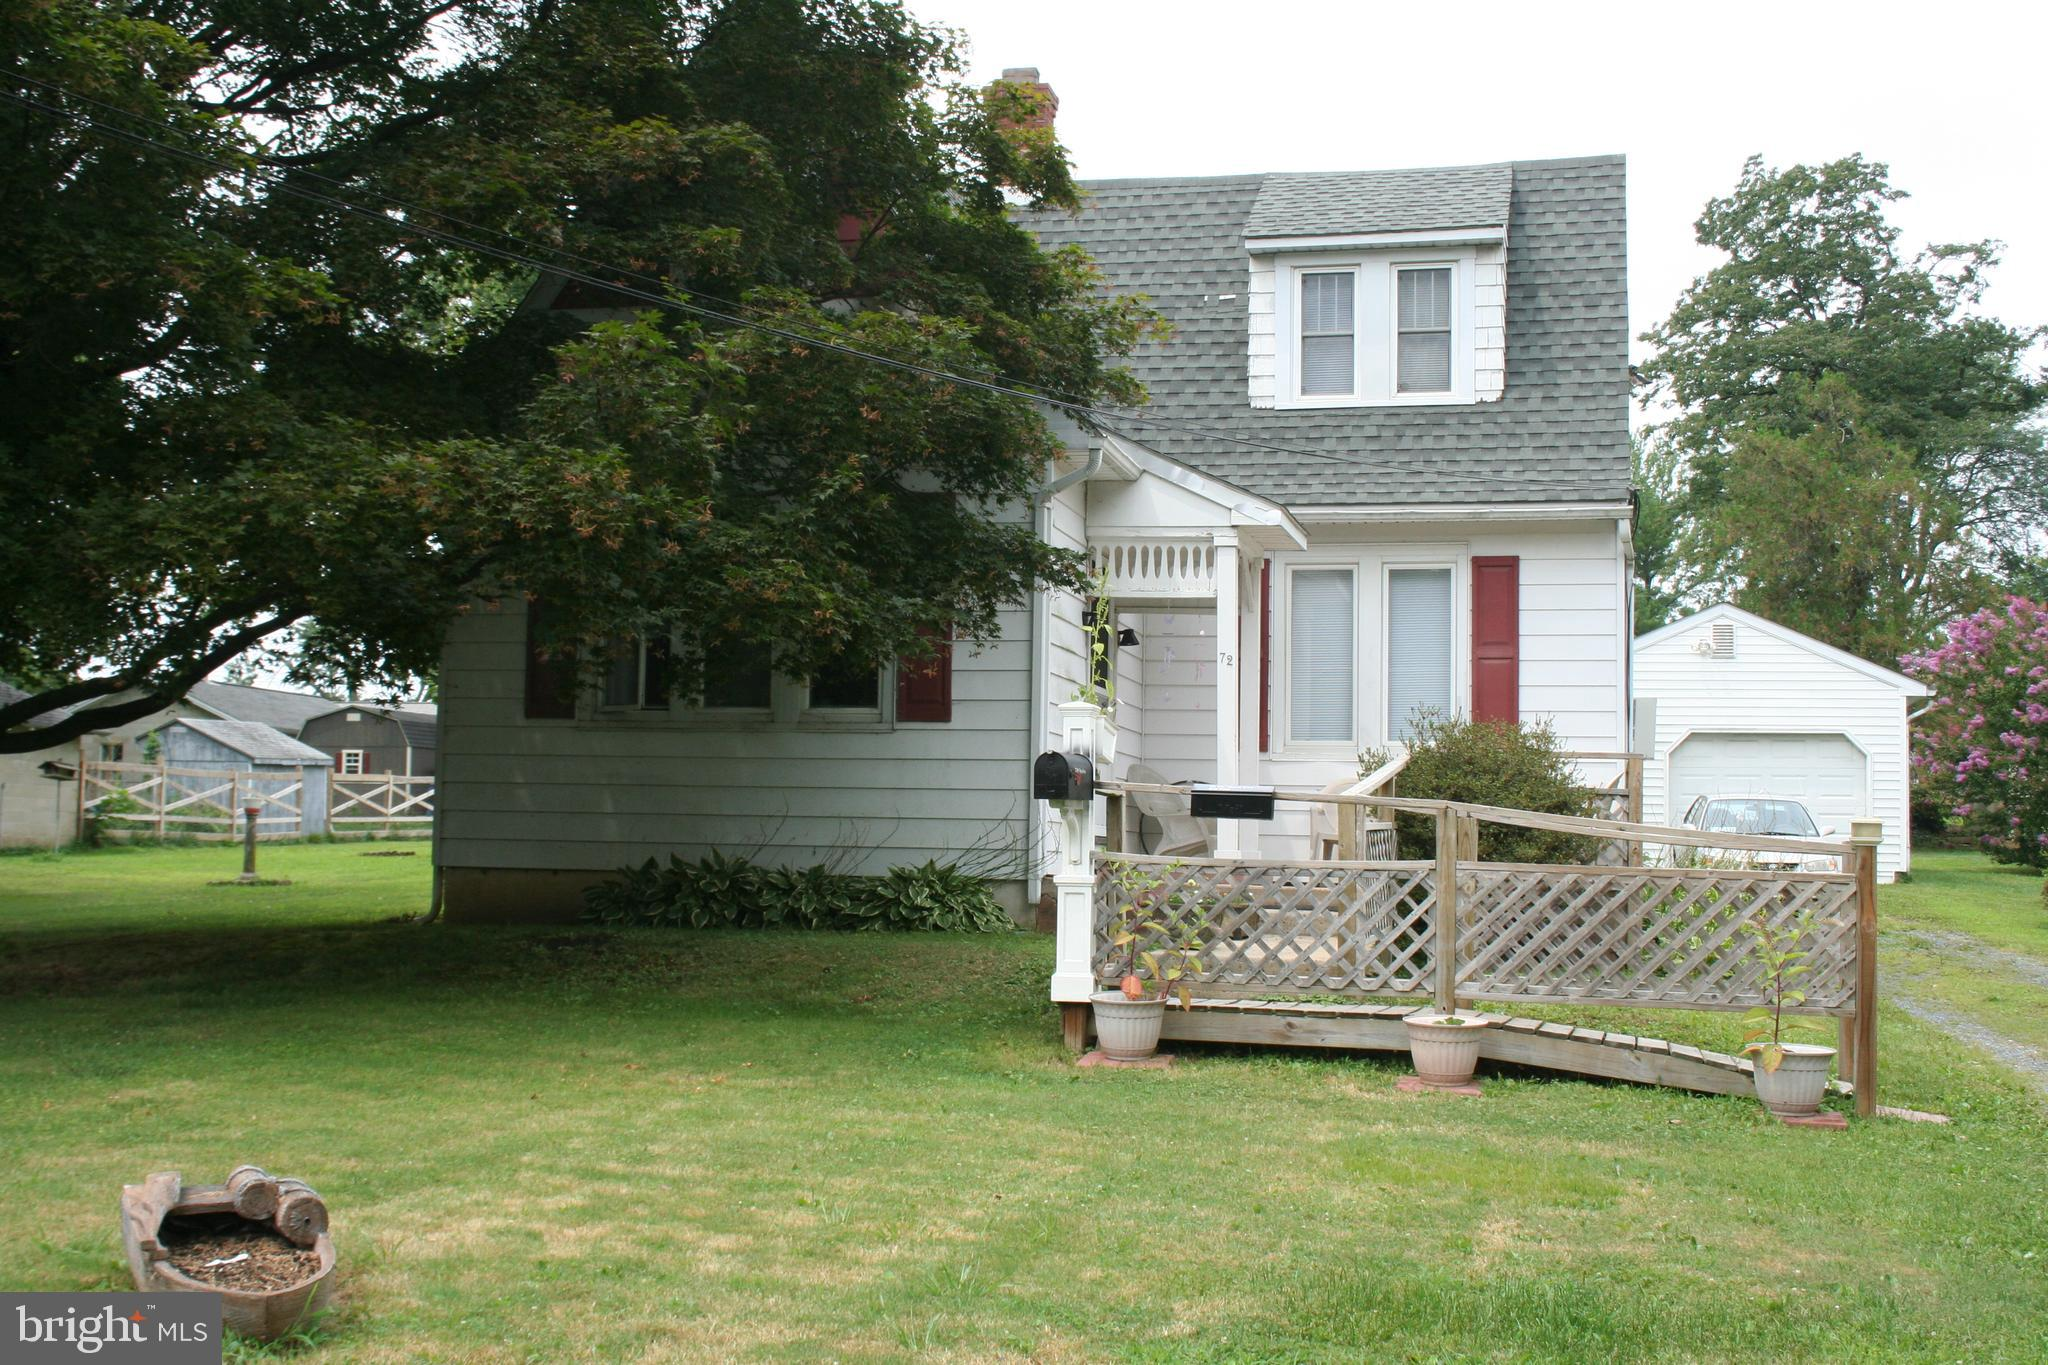 Great  investment opportunity! This detached home features two units...each has Living room, formal